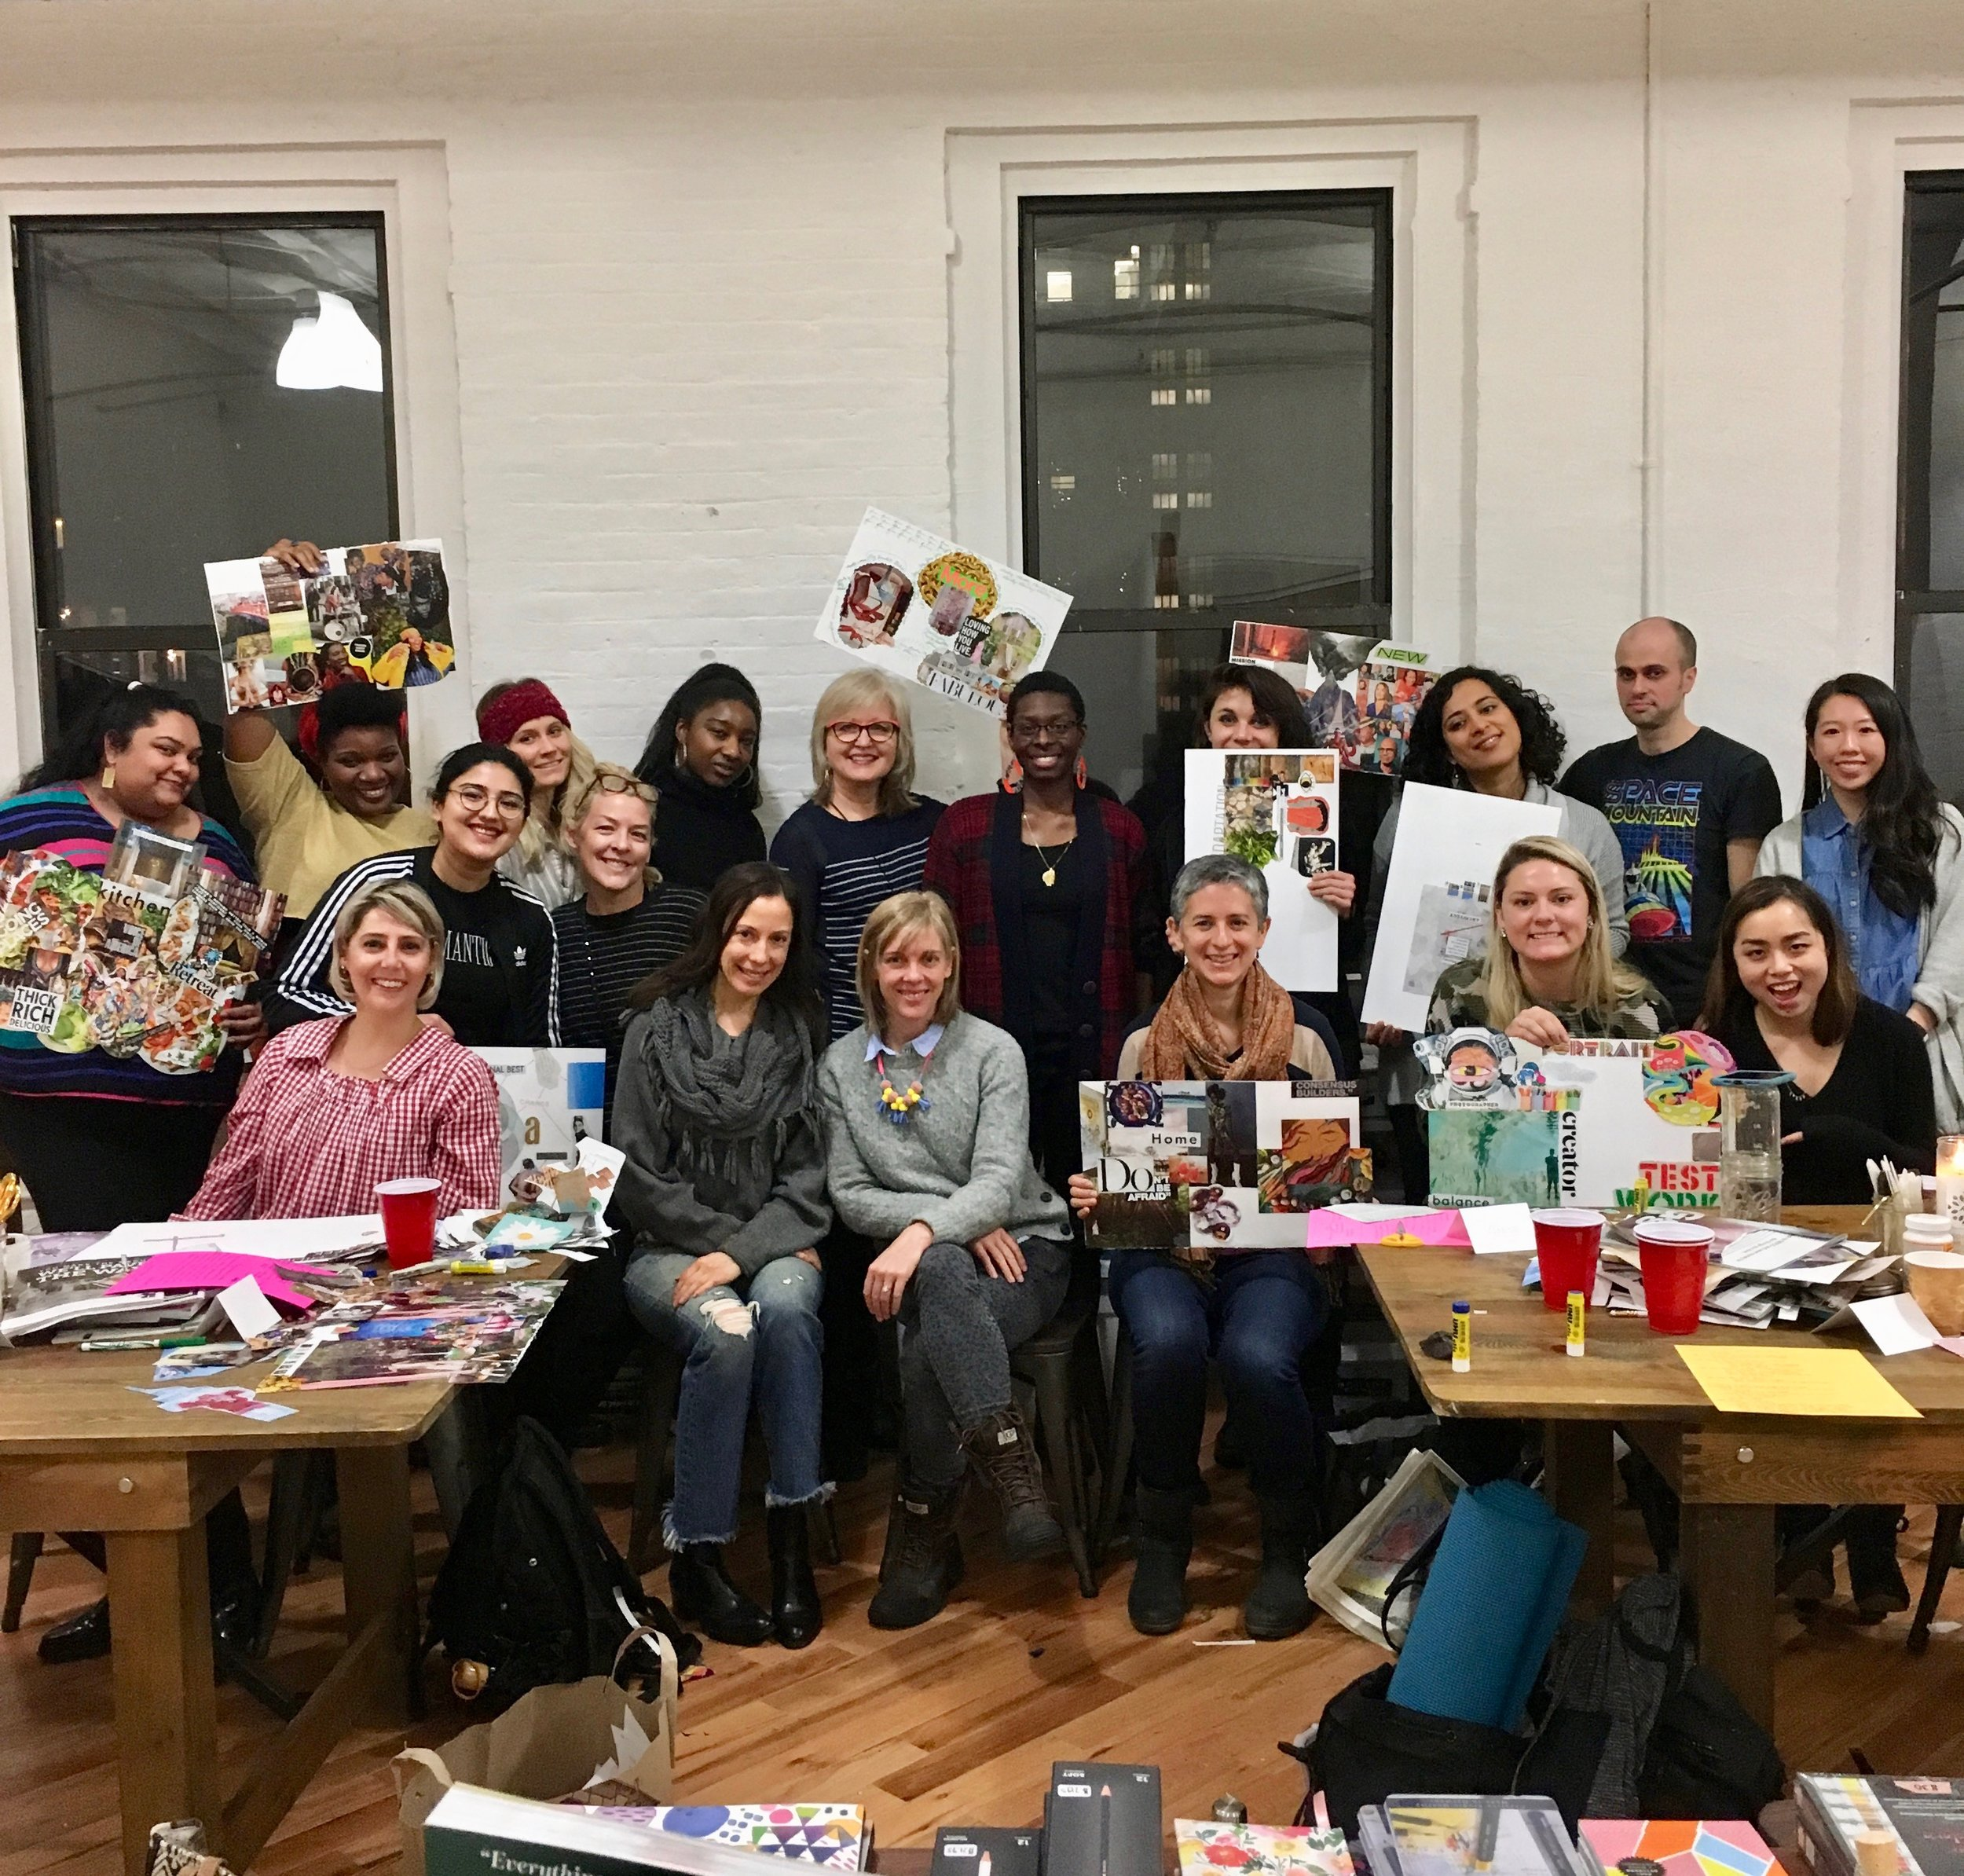 Vision Board Workshop at our Distill Creative Studio in Brooklyn.